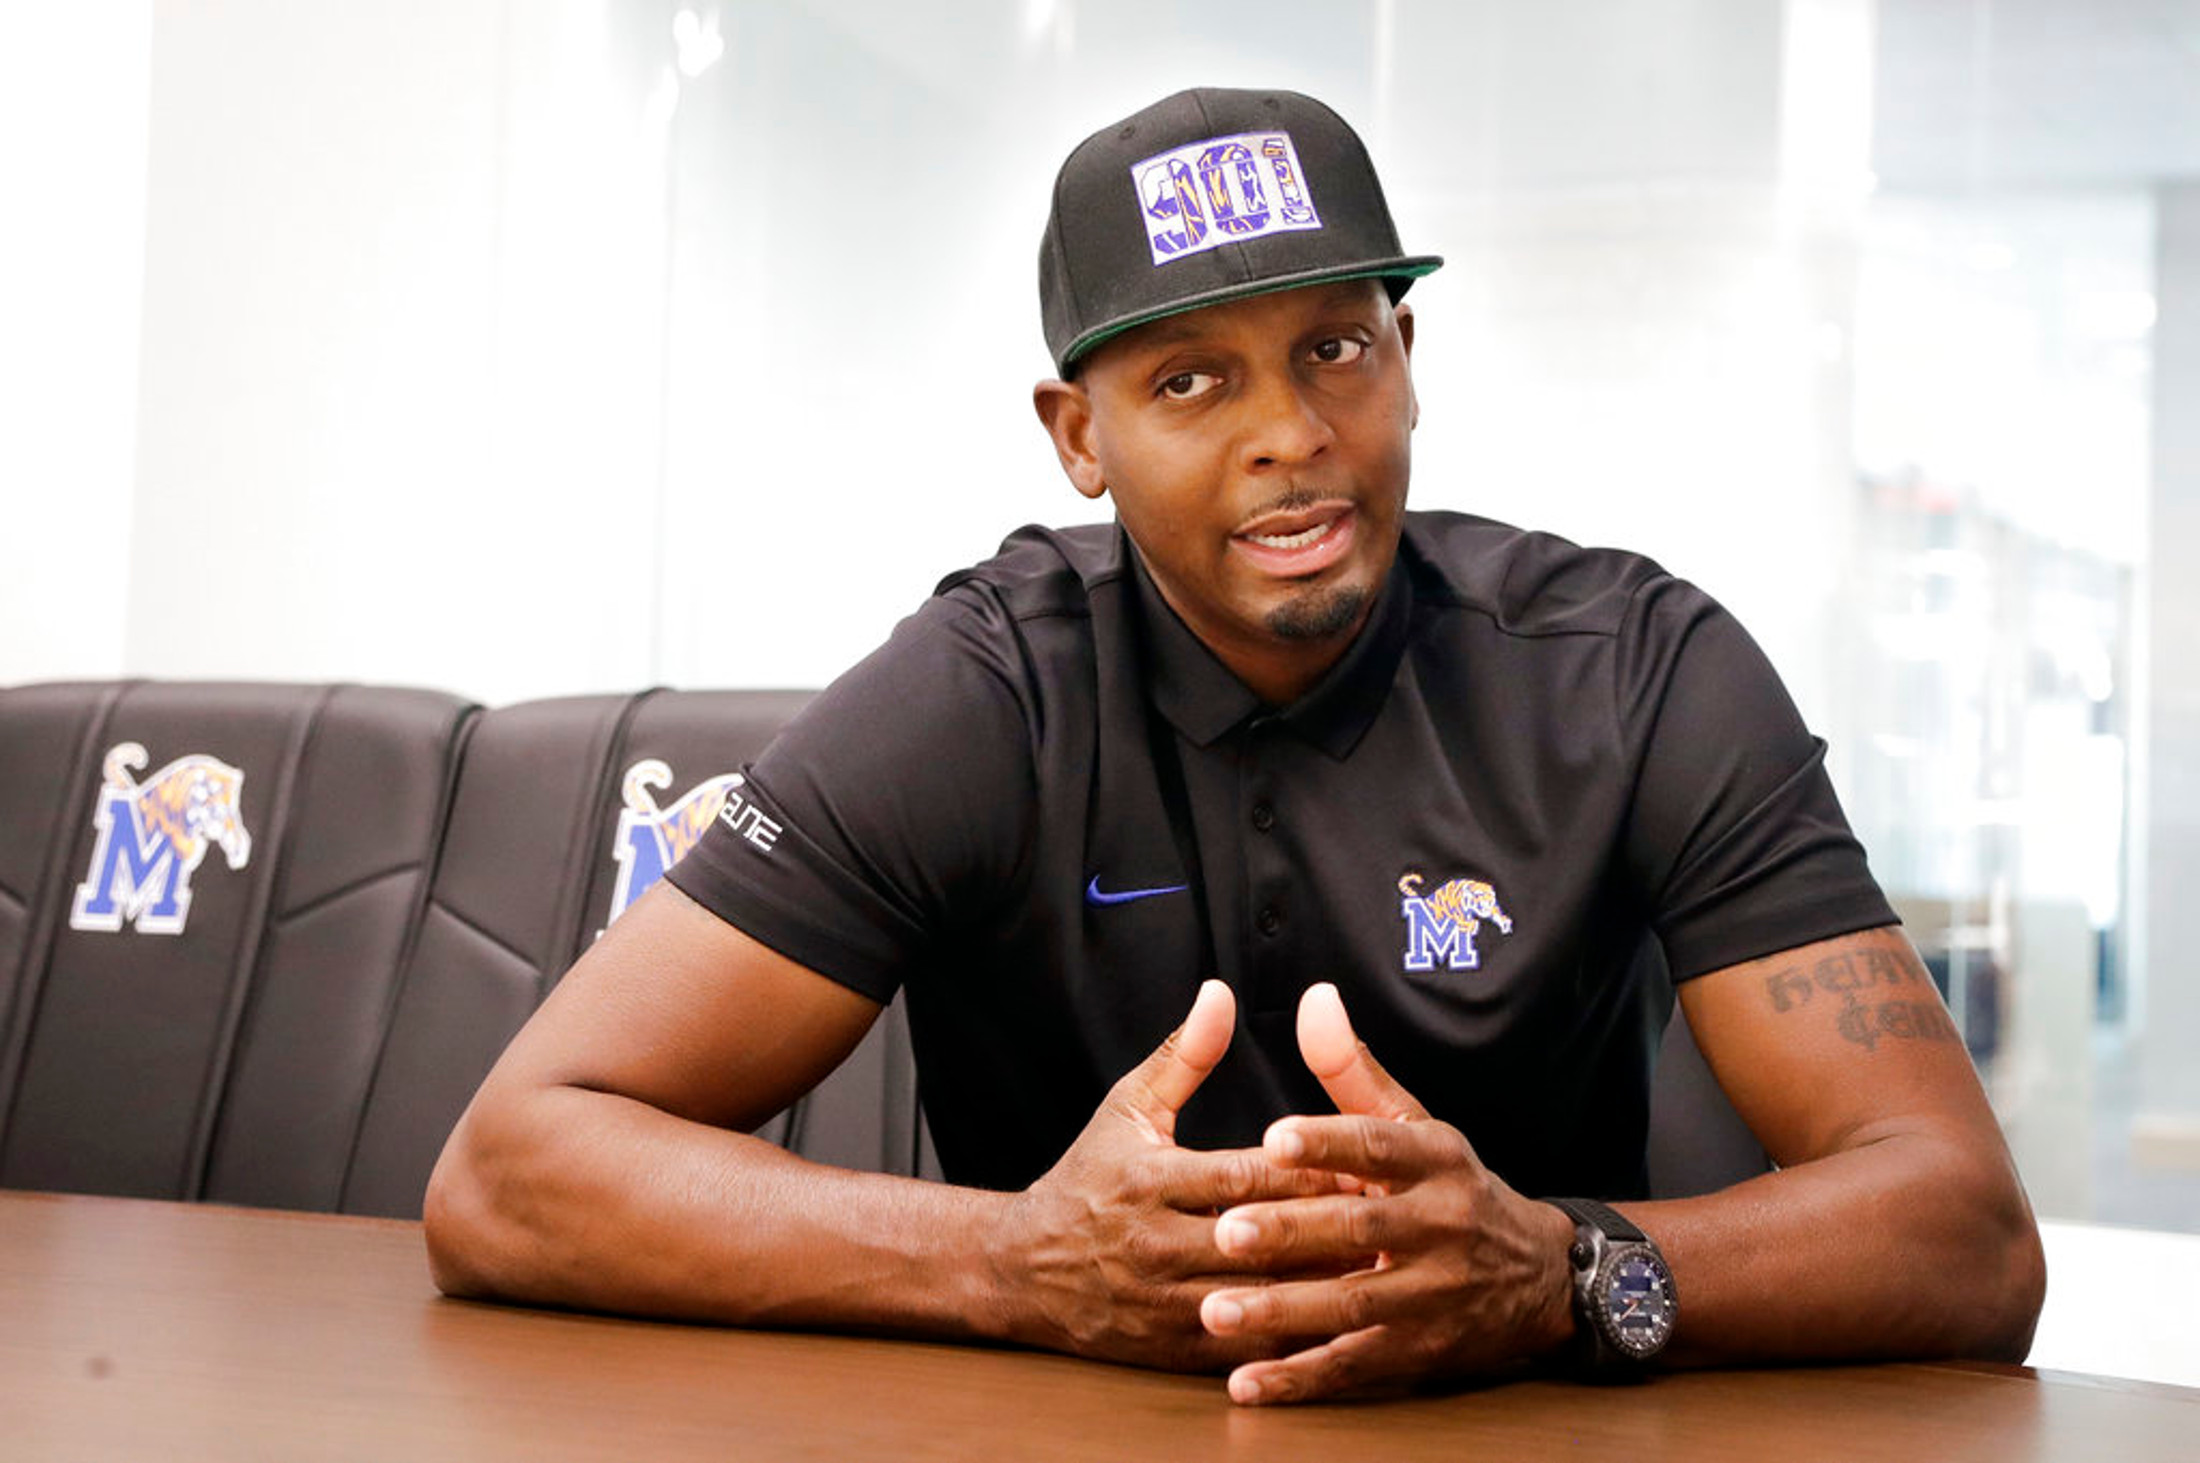 FILE - In this June 8, 2018, file photo, Memphis basketball coach Penny Hardaway talks about his new job in the school's basketball offices in Memphis, Tenn. Memphis hired Hardaway last spring after letting Tubby Smith go after community interest and fans dwindled at Tigers' games. Memphis is hoping its favorite son can pick up the pieces. (AP Photo/Mark Humphrey, File)